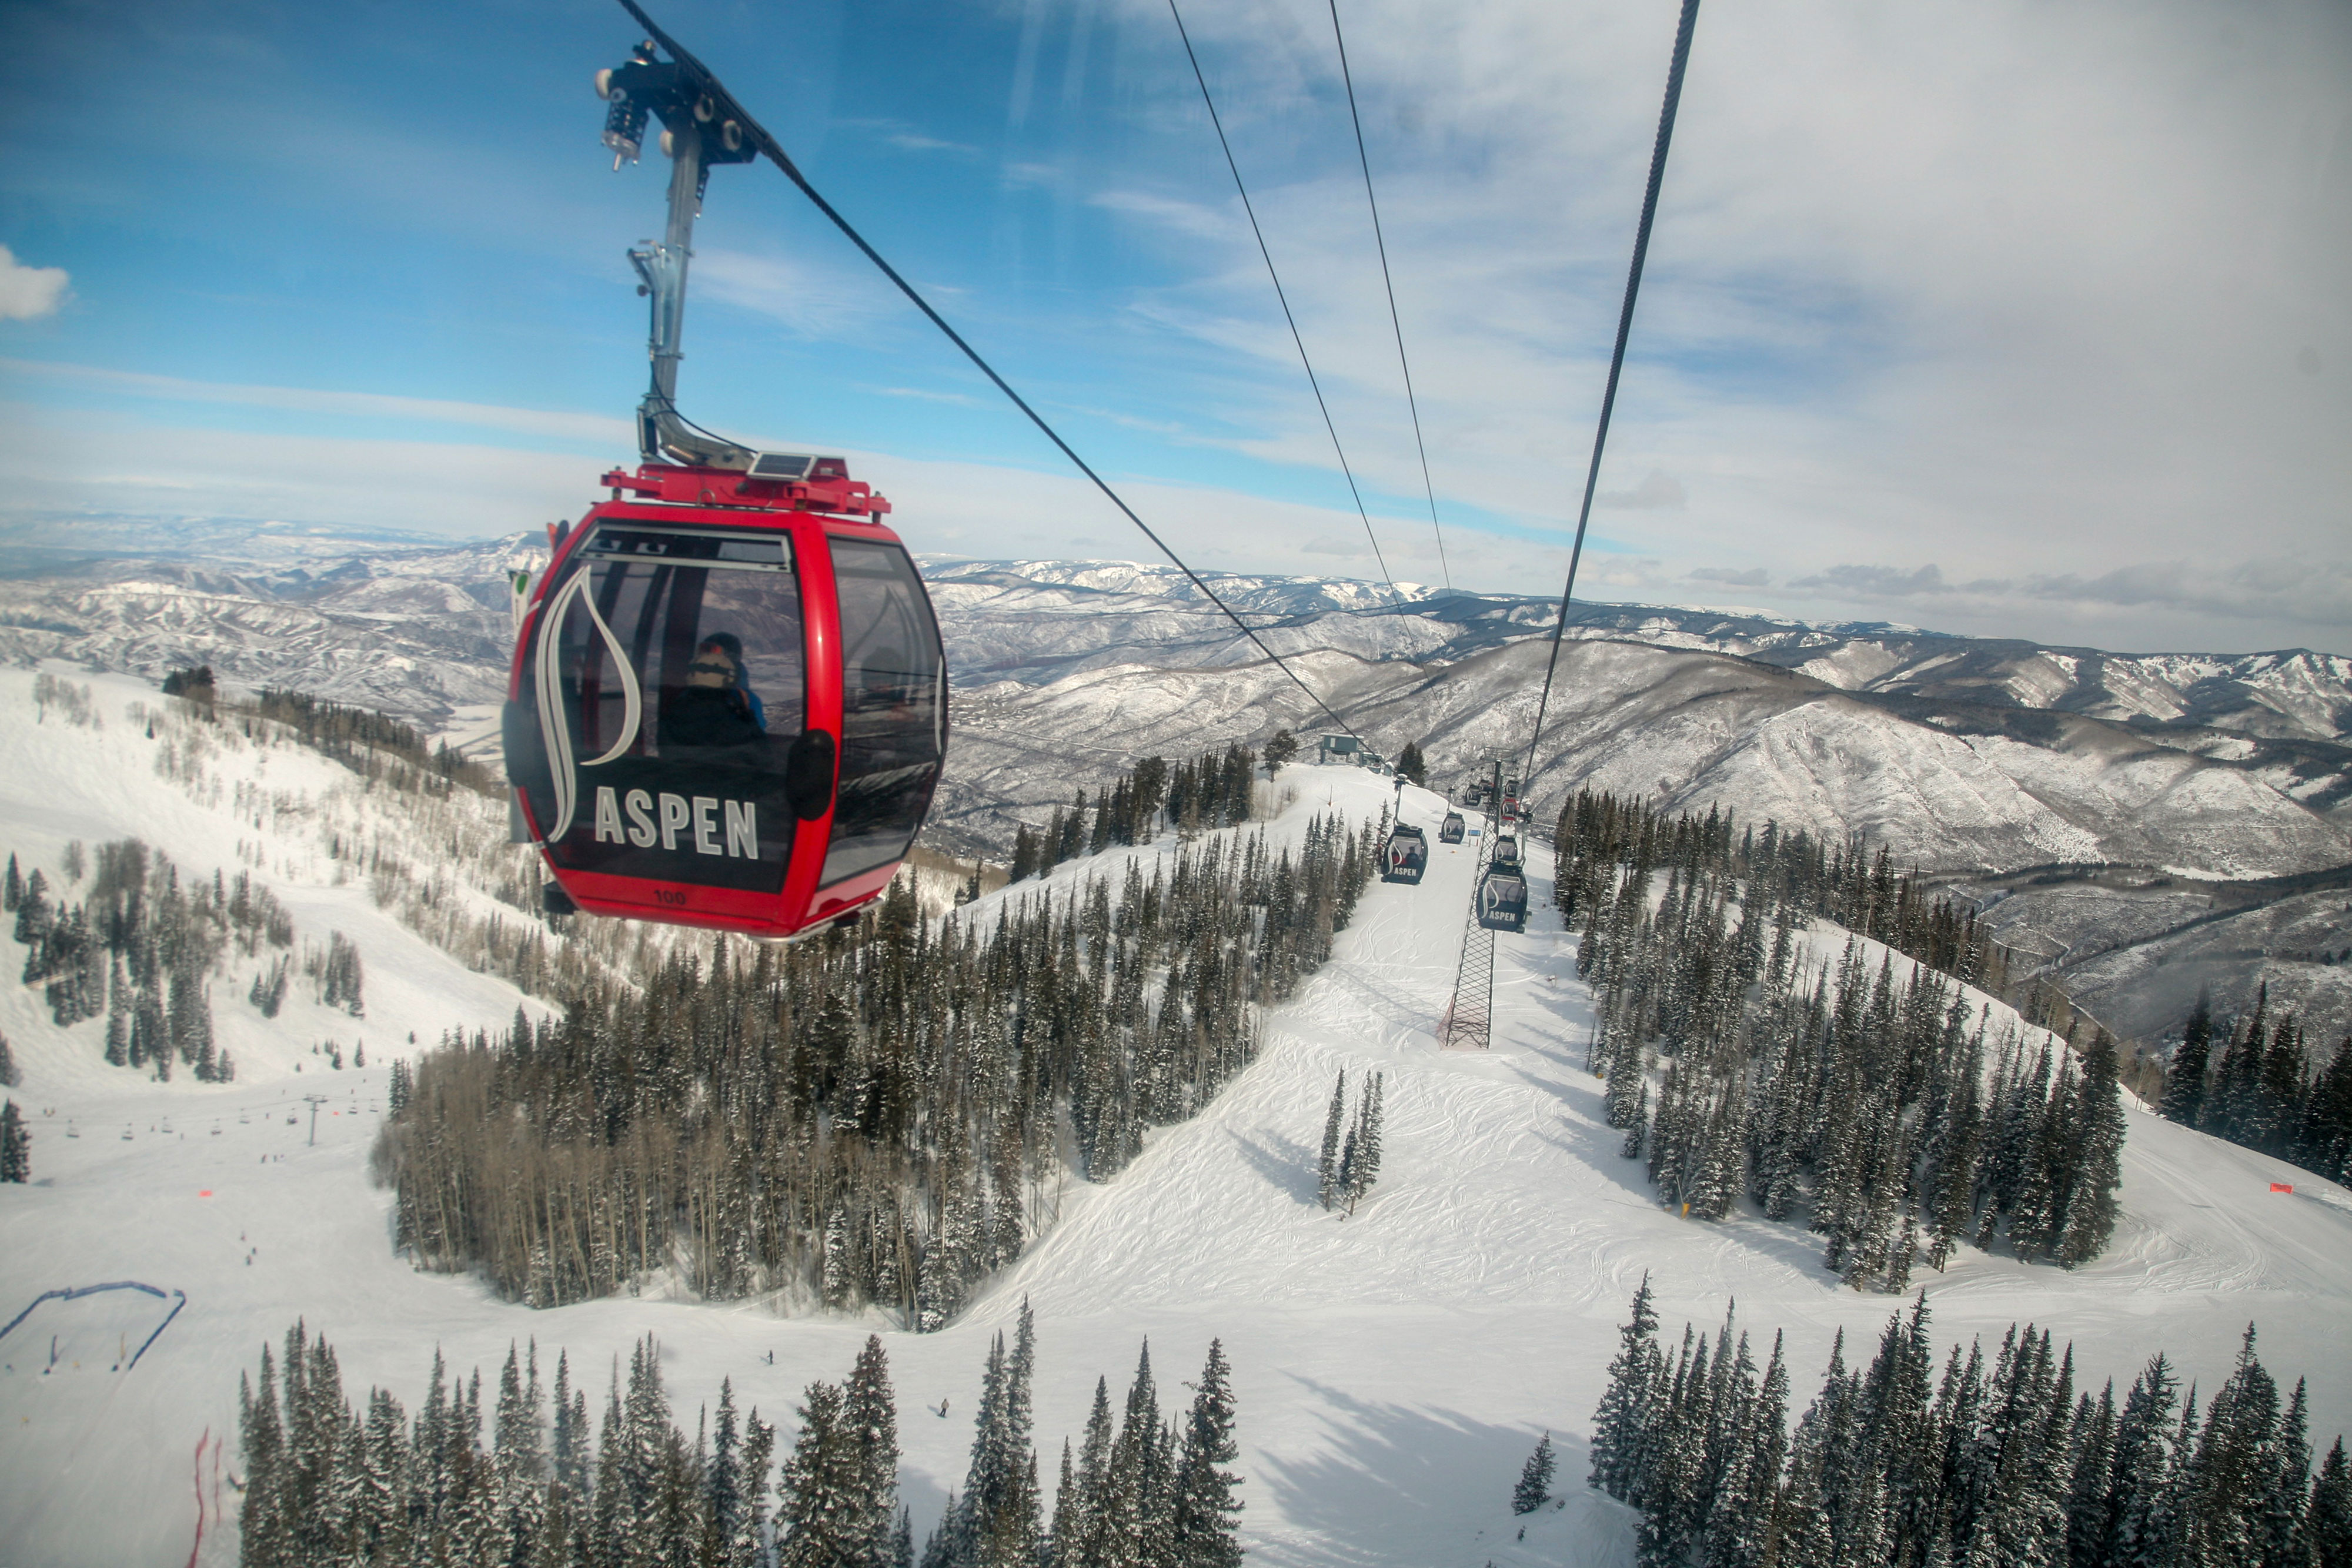 While Aspen has been a skiing destination since the 1940s, the opening of its Silver Queen Gondola in 1986 helped its appeal explode. It cut the time it took to get up the mountain and shielded increasingly wealthy visitors from the elements.